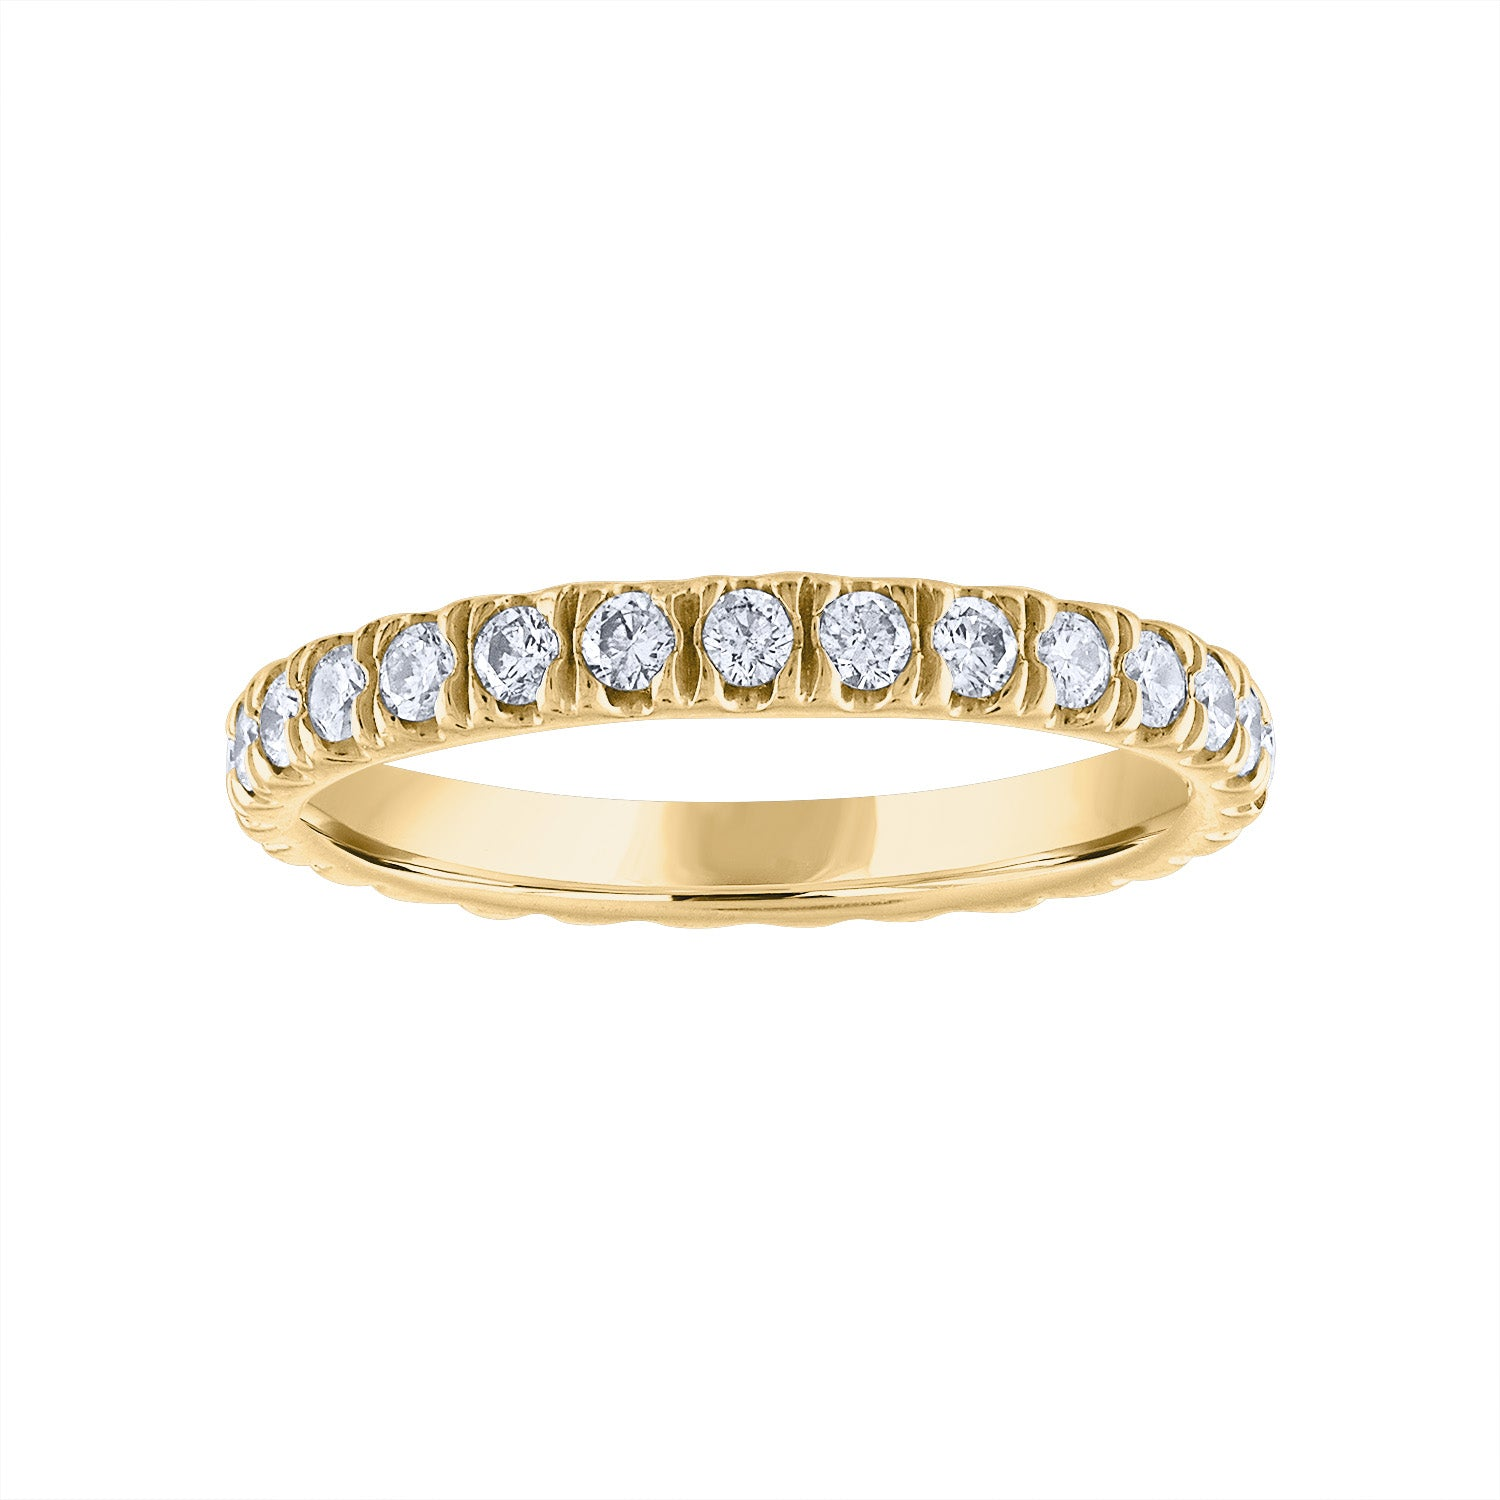 18KT GOLD DIAMOND LARGE RING GUARD